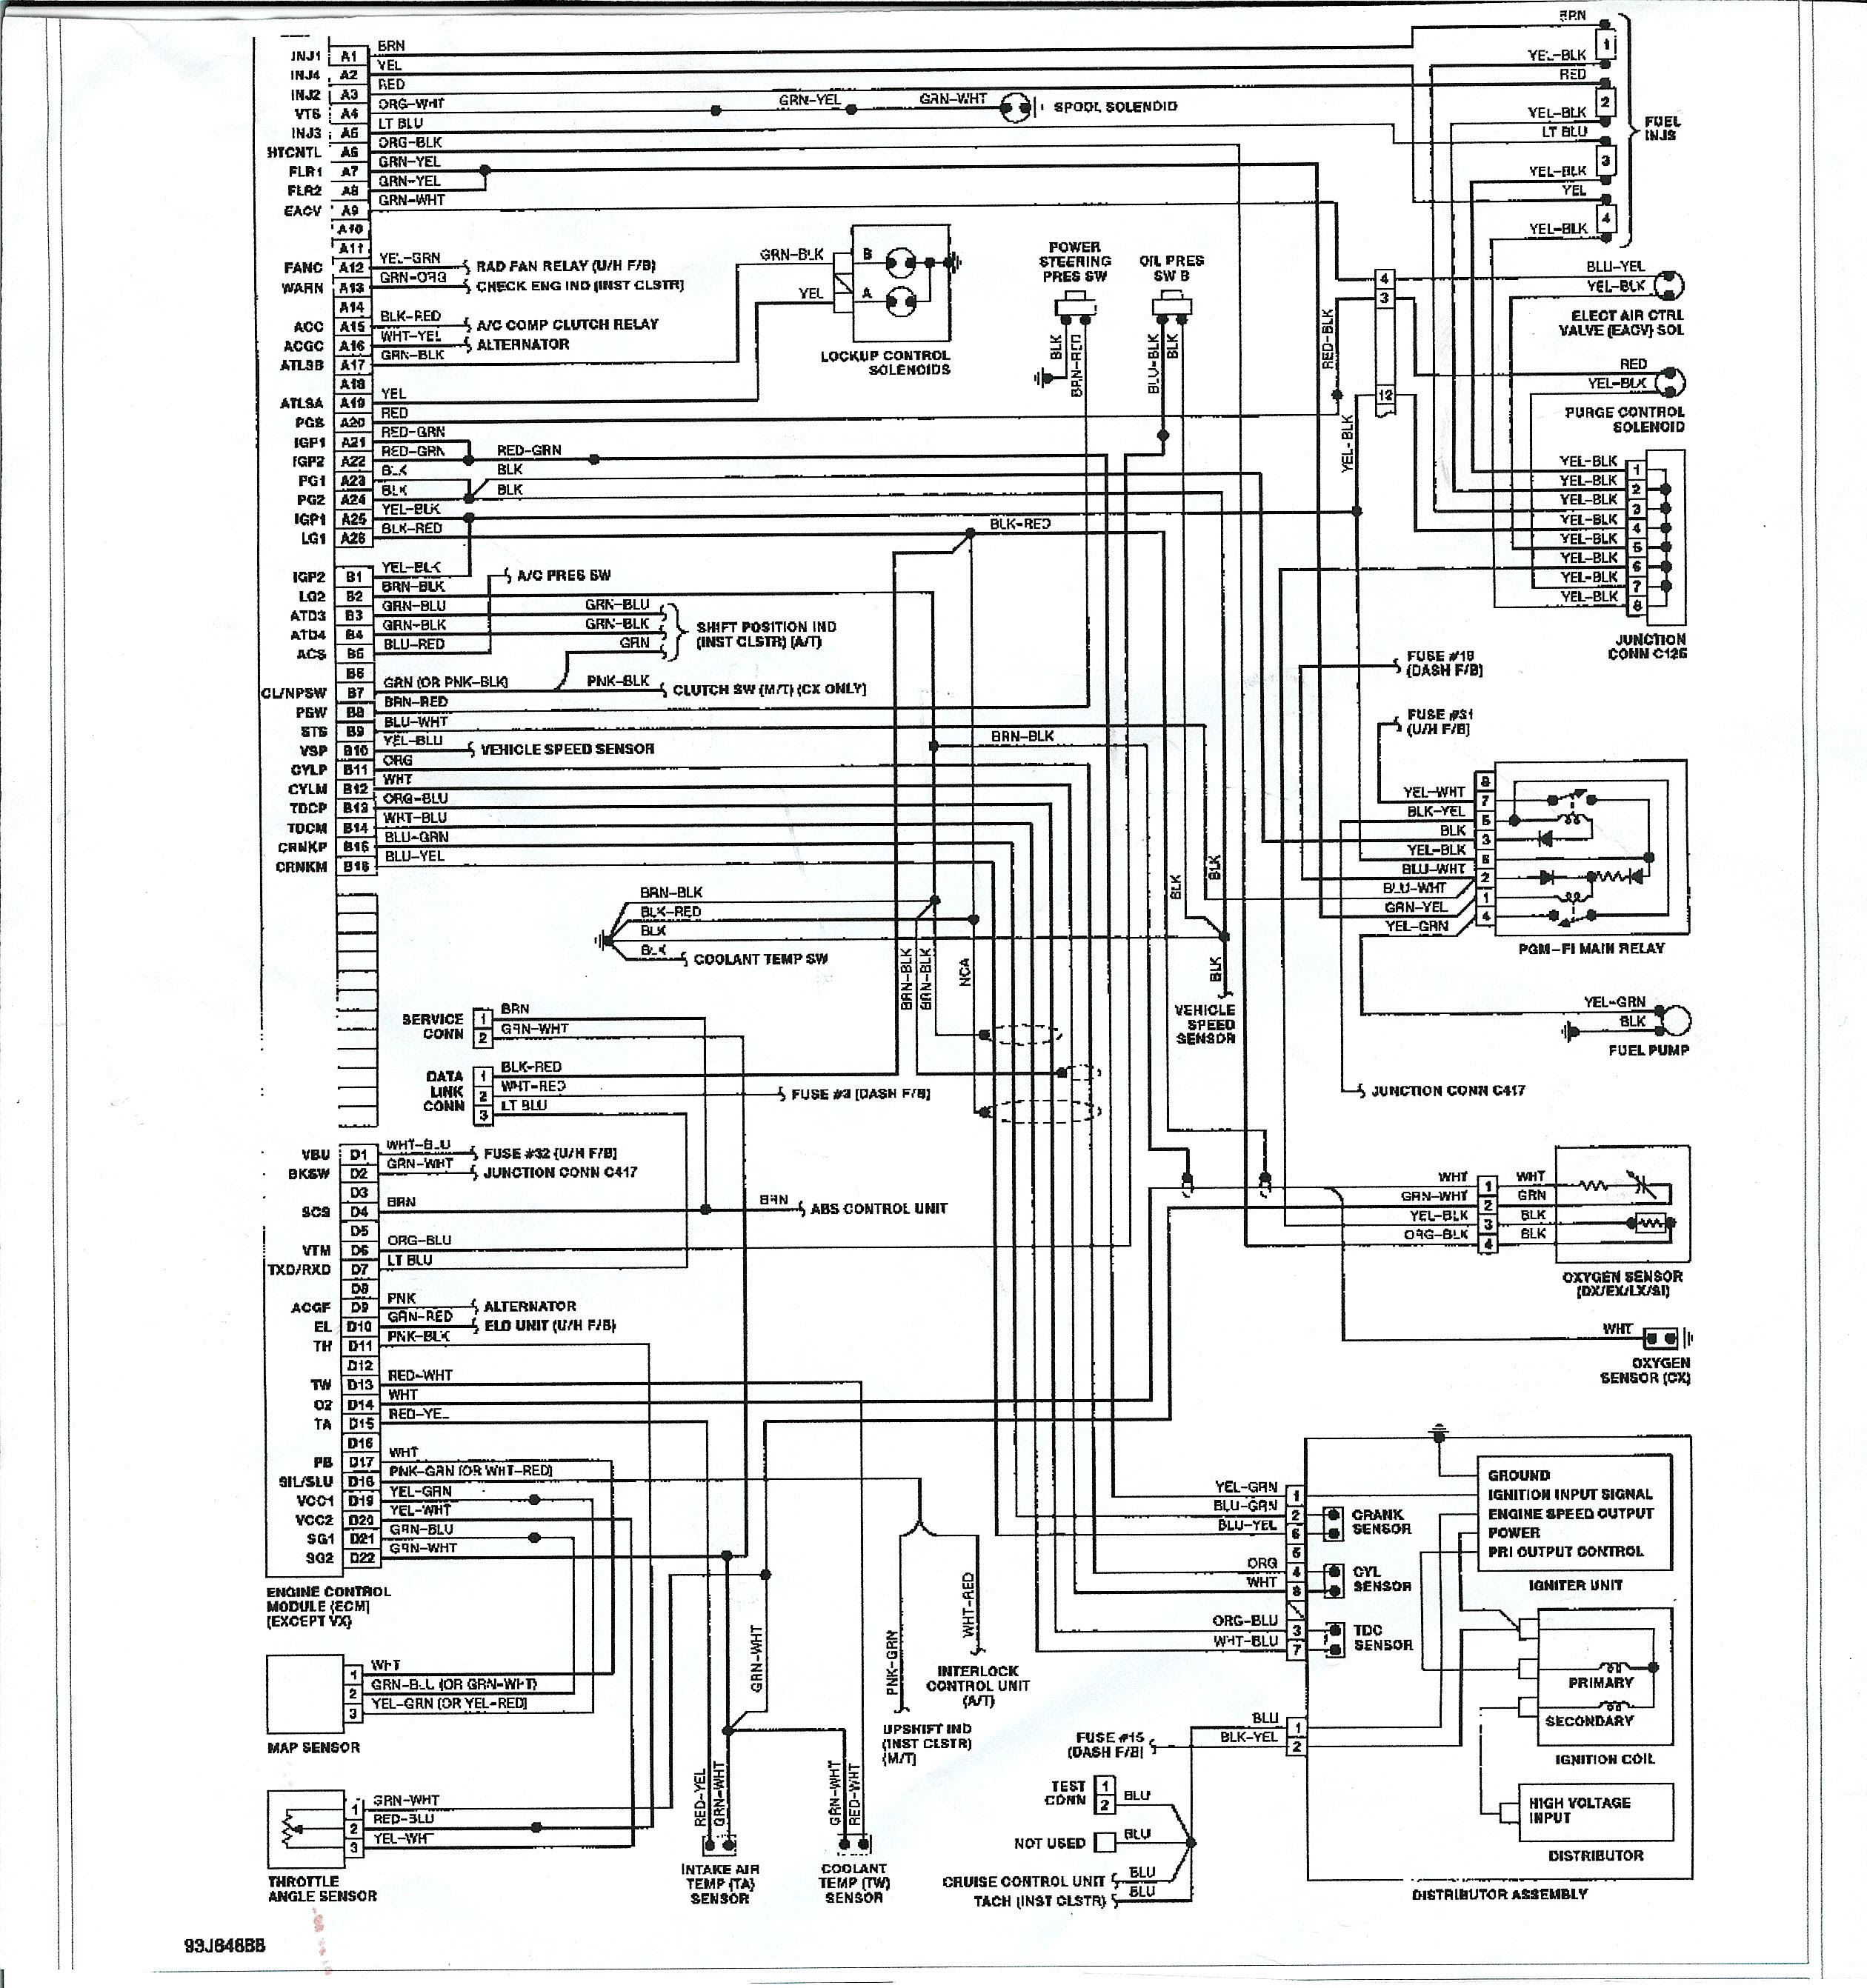 Diagram 1995 Acura Integra Gsr Stereo Wiring Diagram Full Version Hd Quality Wiring Diagram Diagramabdulz Gotoscana It